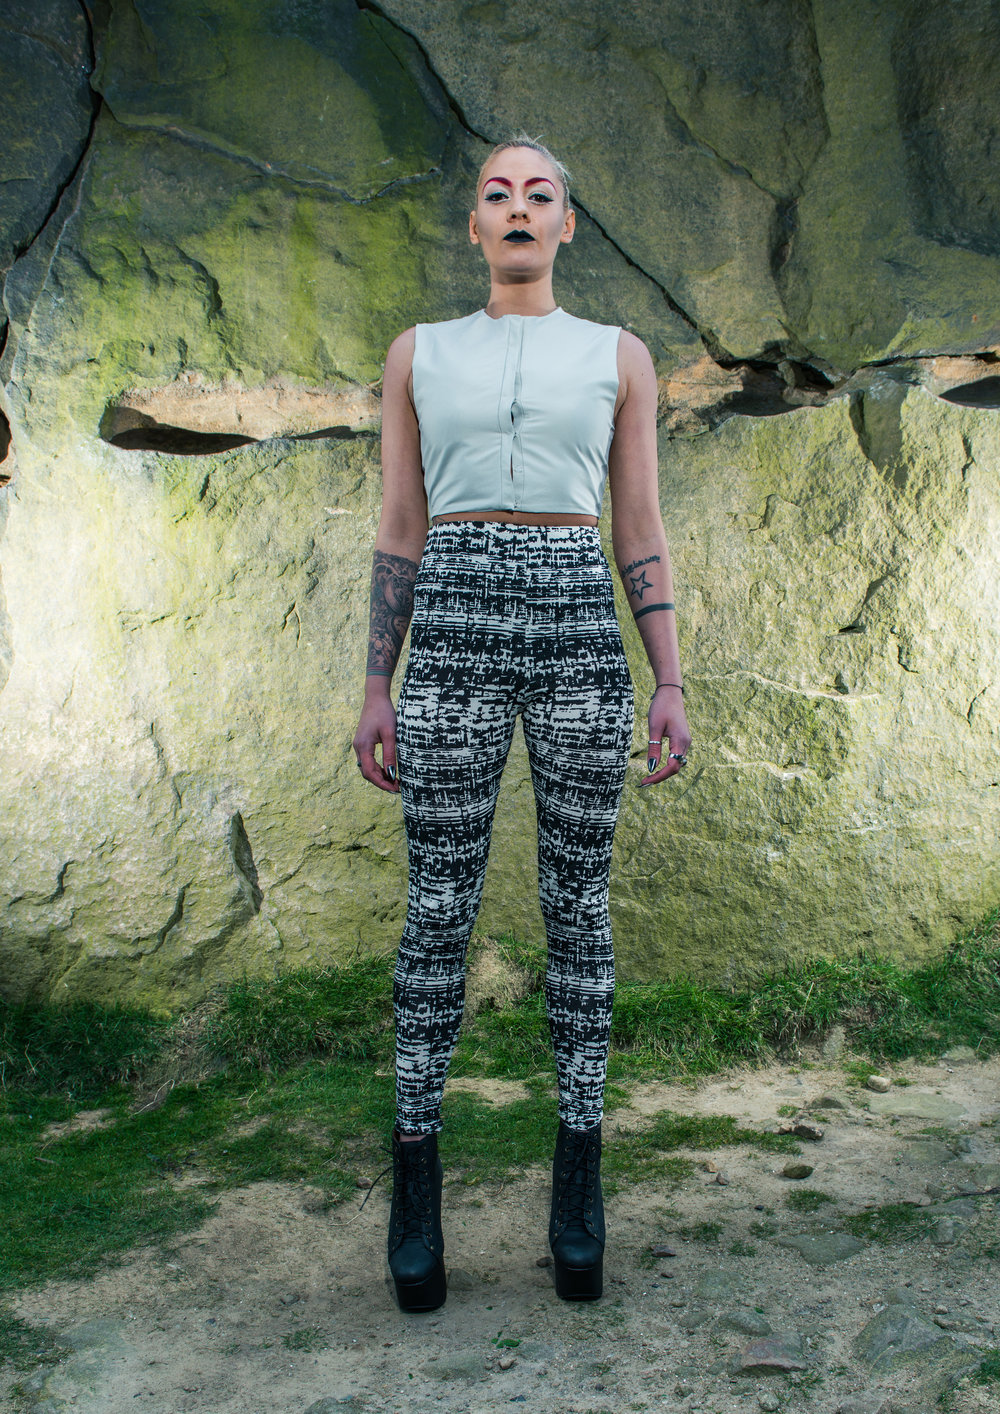 zaramia-ava-zaramiaava-leeds-fashion-designer-ethical-sustainable-tailored-minimalist-aya-grey-print-fitted-bandeau-leggings-versatile-drape-cowl-styling-womenswear-models-photoshoot-location-23